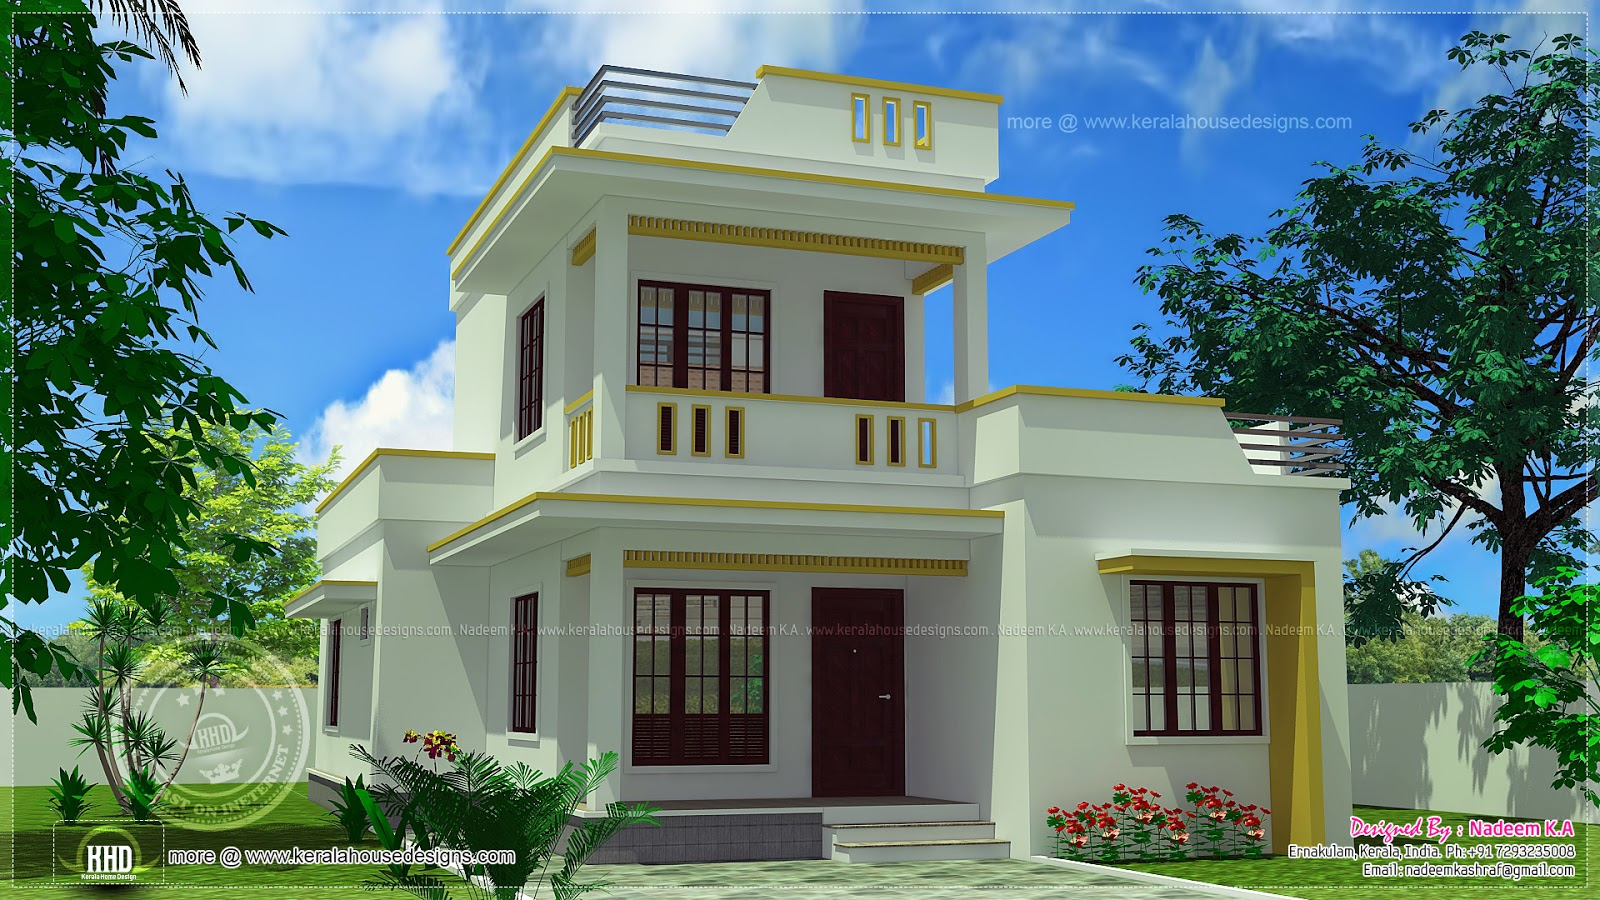 August 2013 kerala home design and floor plans for Blue print homes